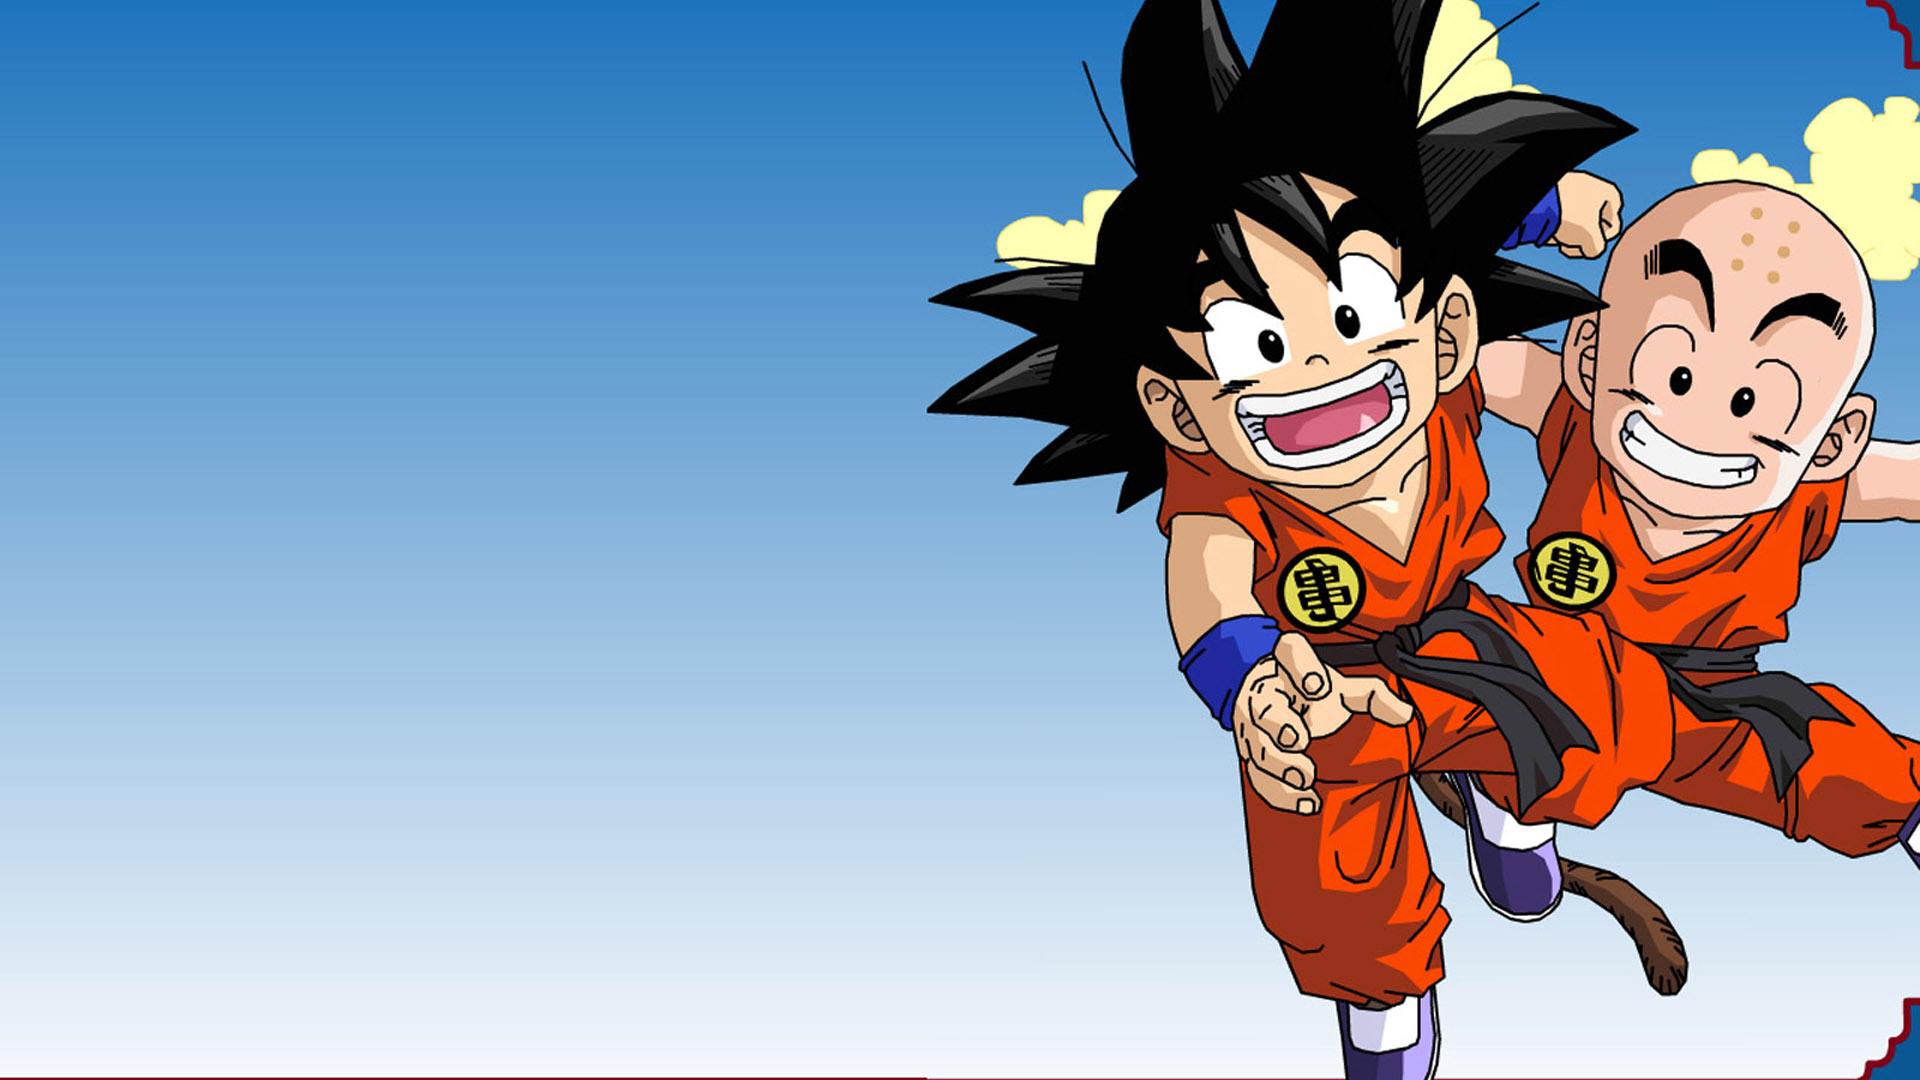 Download Dragonball Wallpaper 1920x1080 Full HD Wallpapers 1920x1080